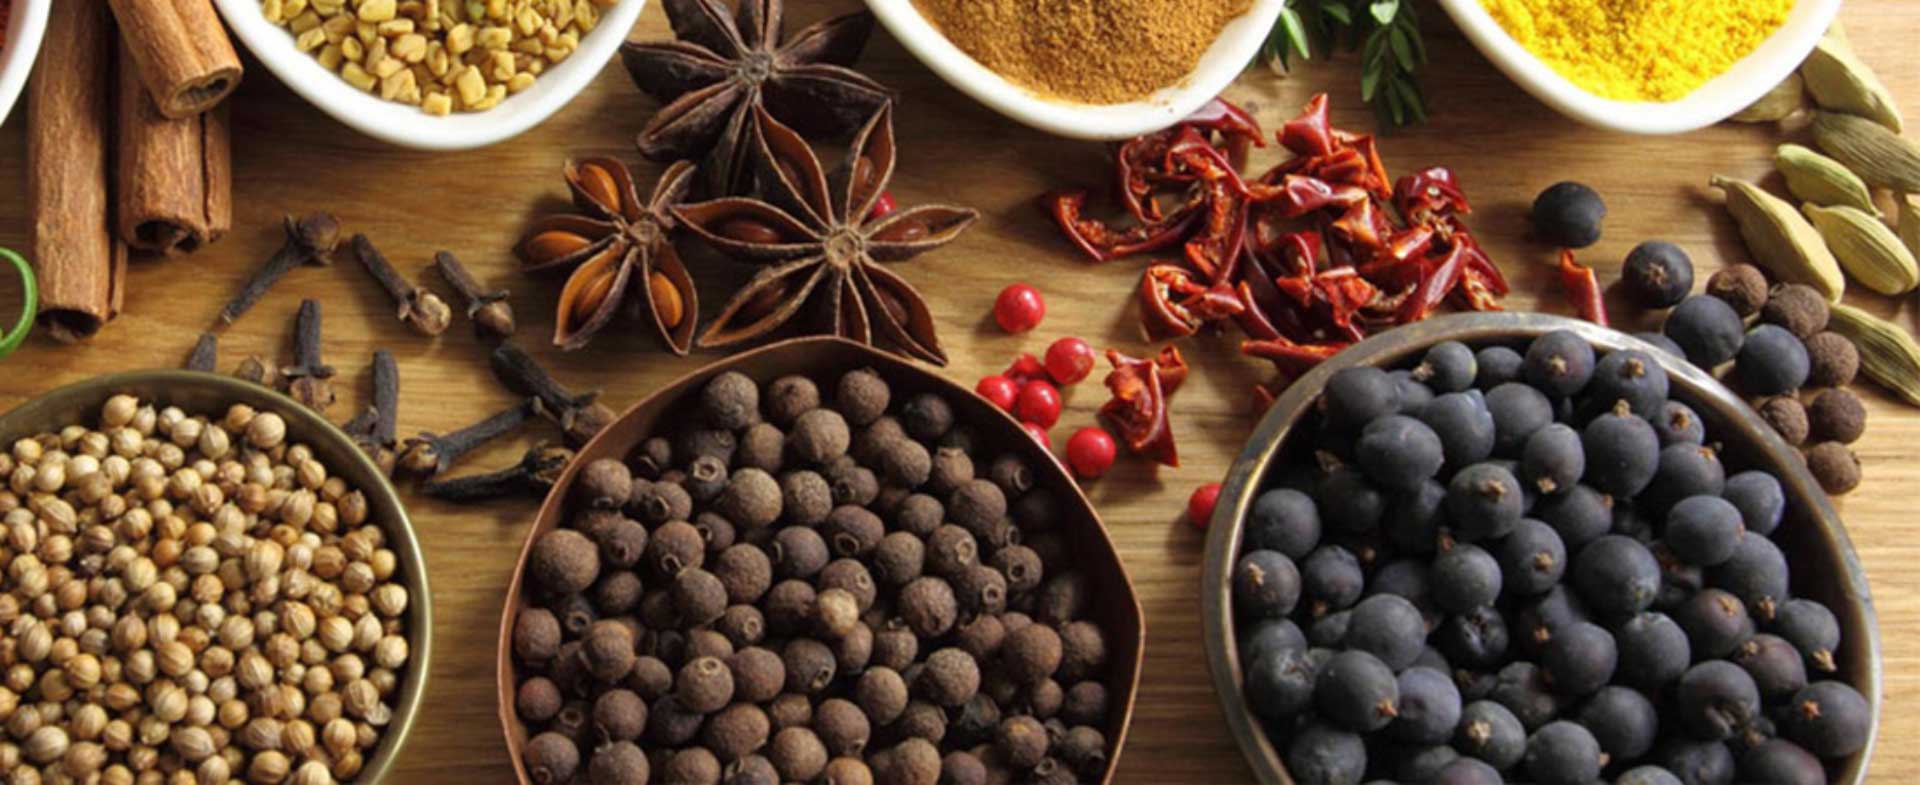 spices powder wholesale supplier India